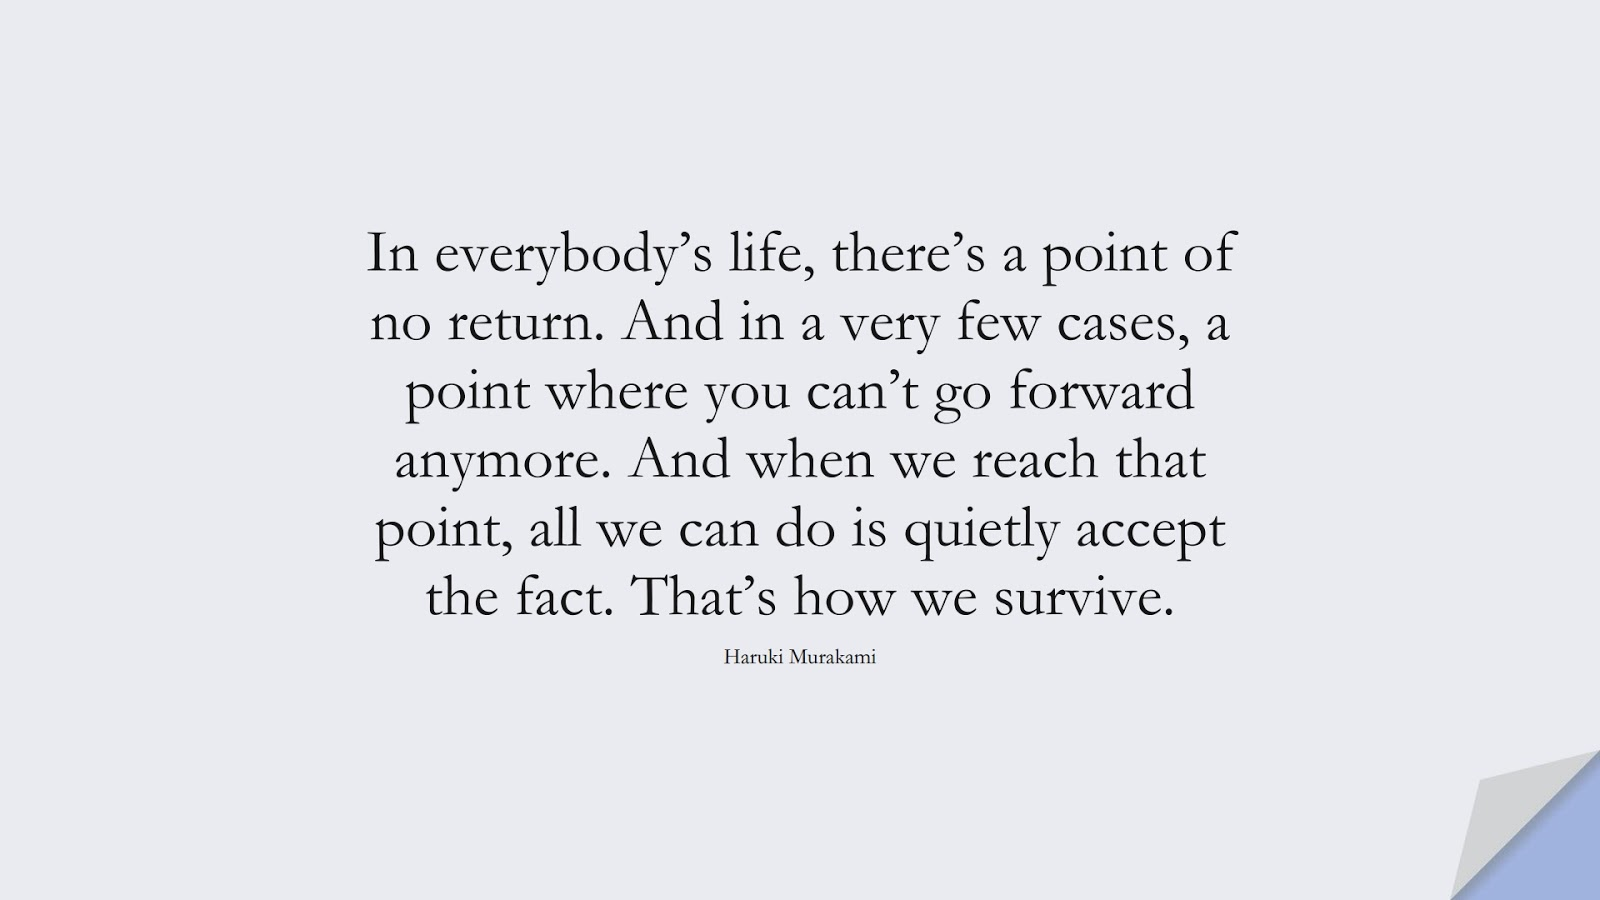 In everybody's life, there's a point of no return. And in a very few cases, a point where you can't go forward anymore. And when we reach that point, all we can do is quietly accept the fact. That's how we survive. (Haruki Murakami);  #MotivationalQuotes